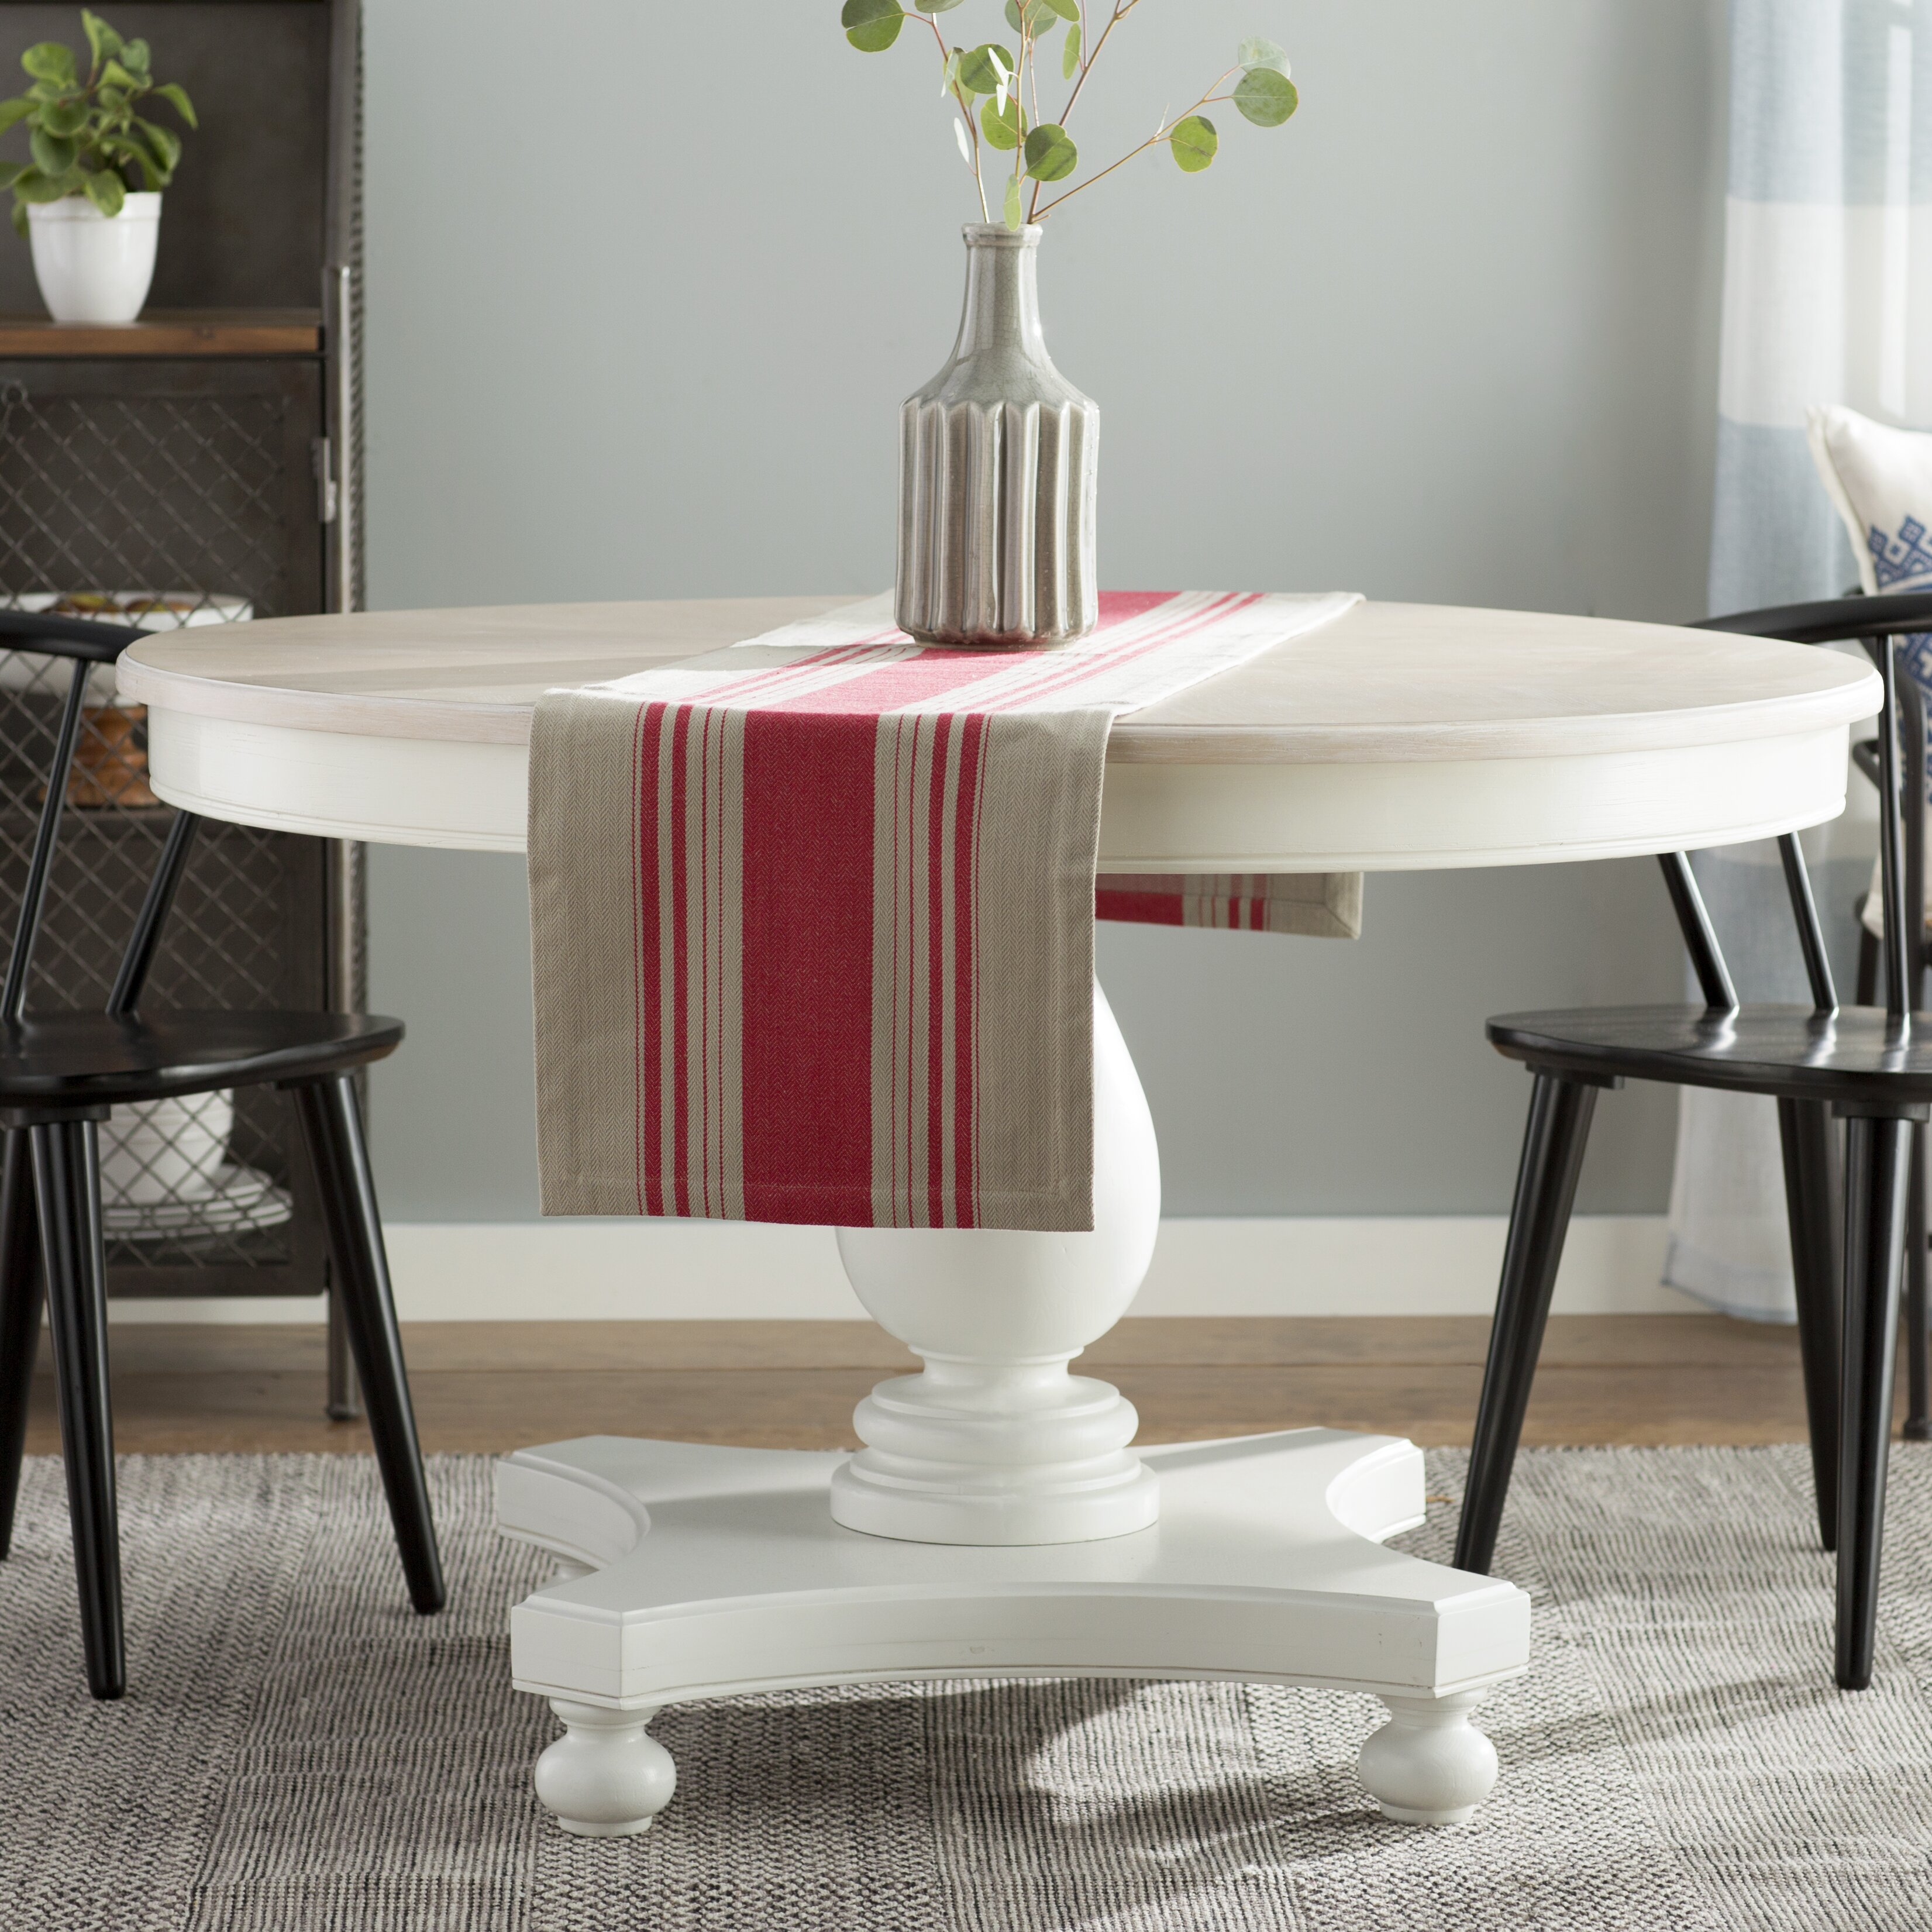 Round Country Kitchen Table